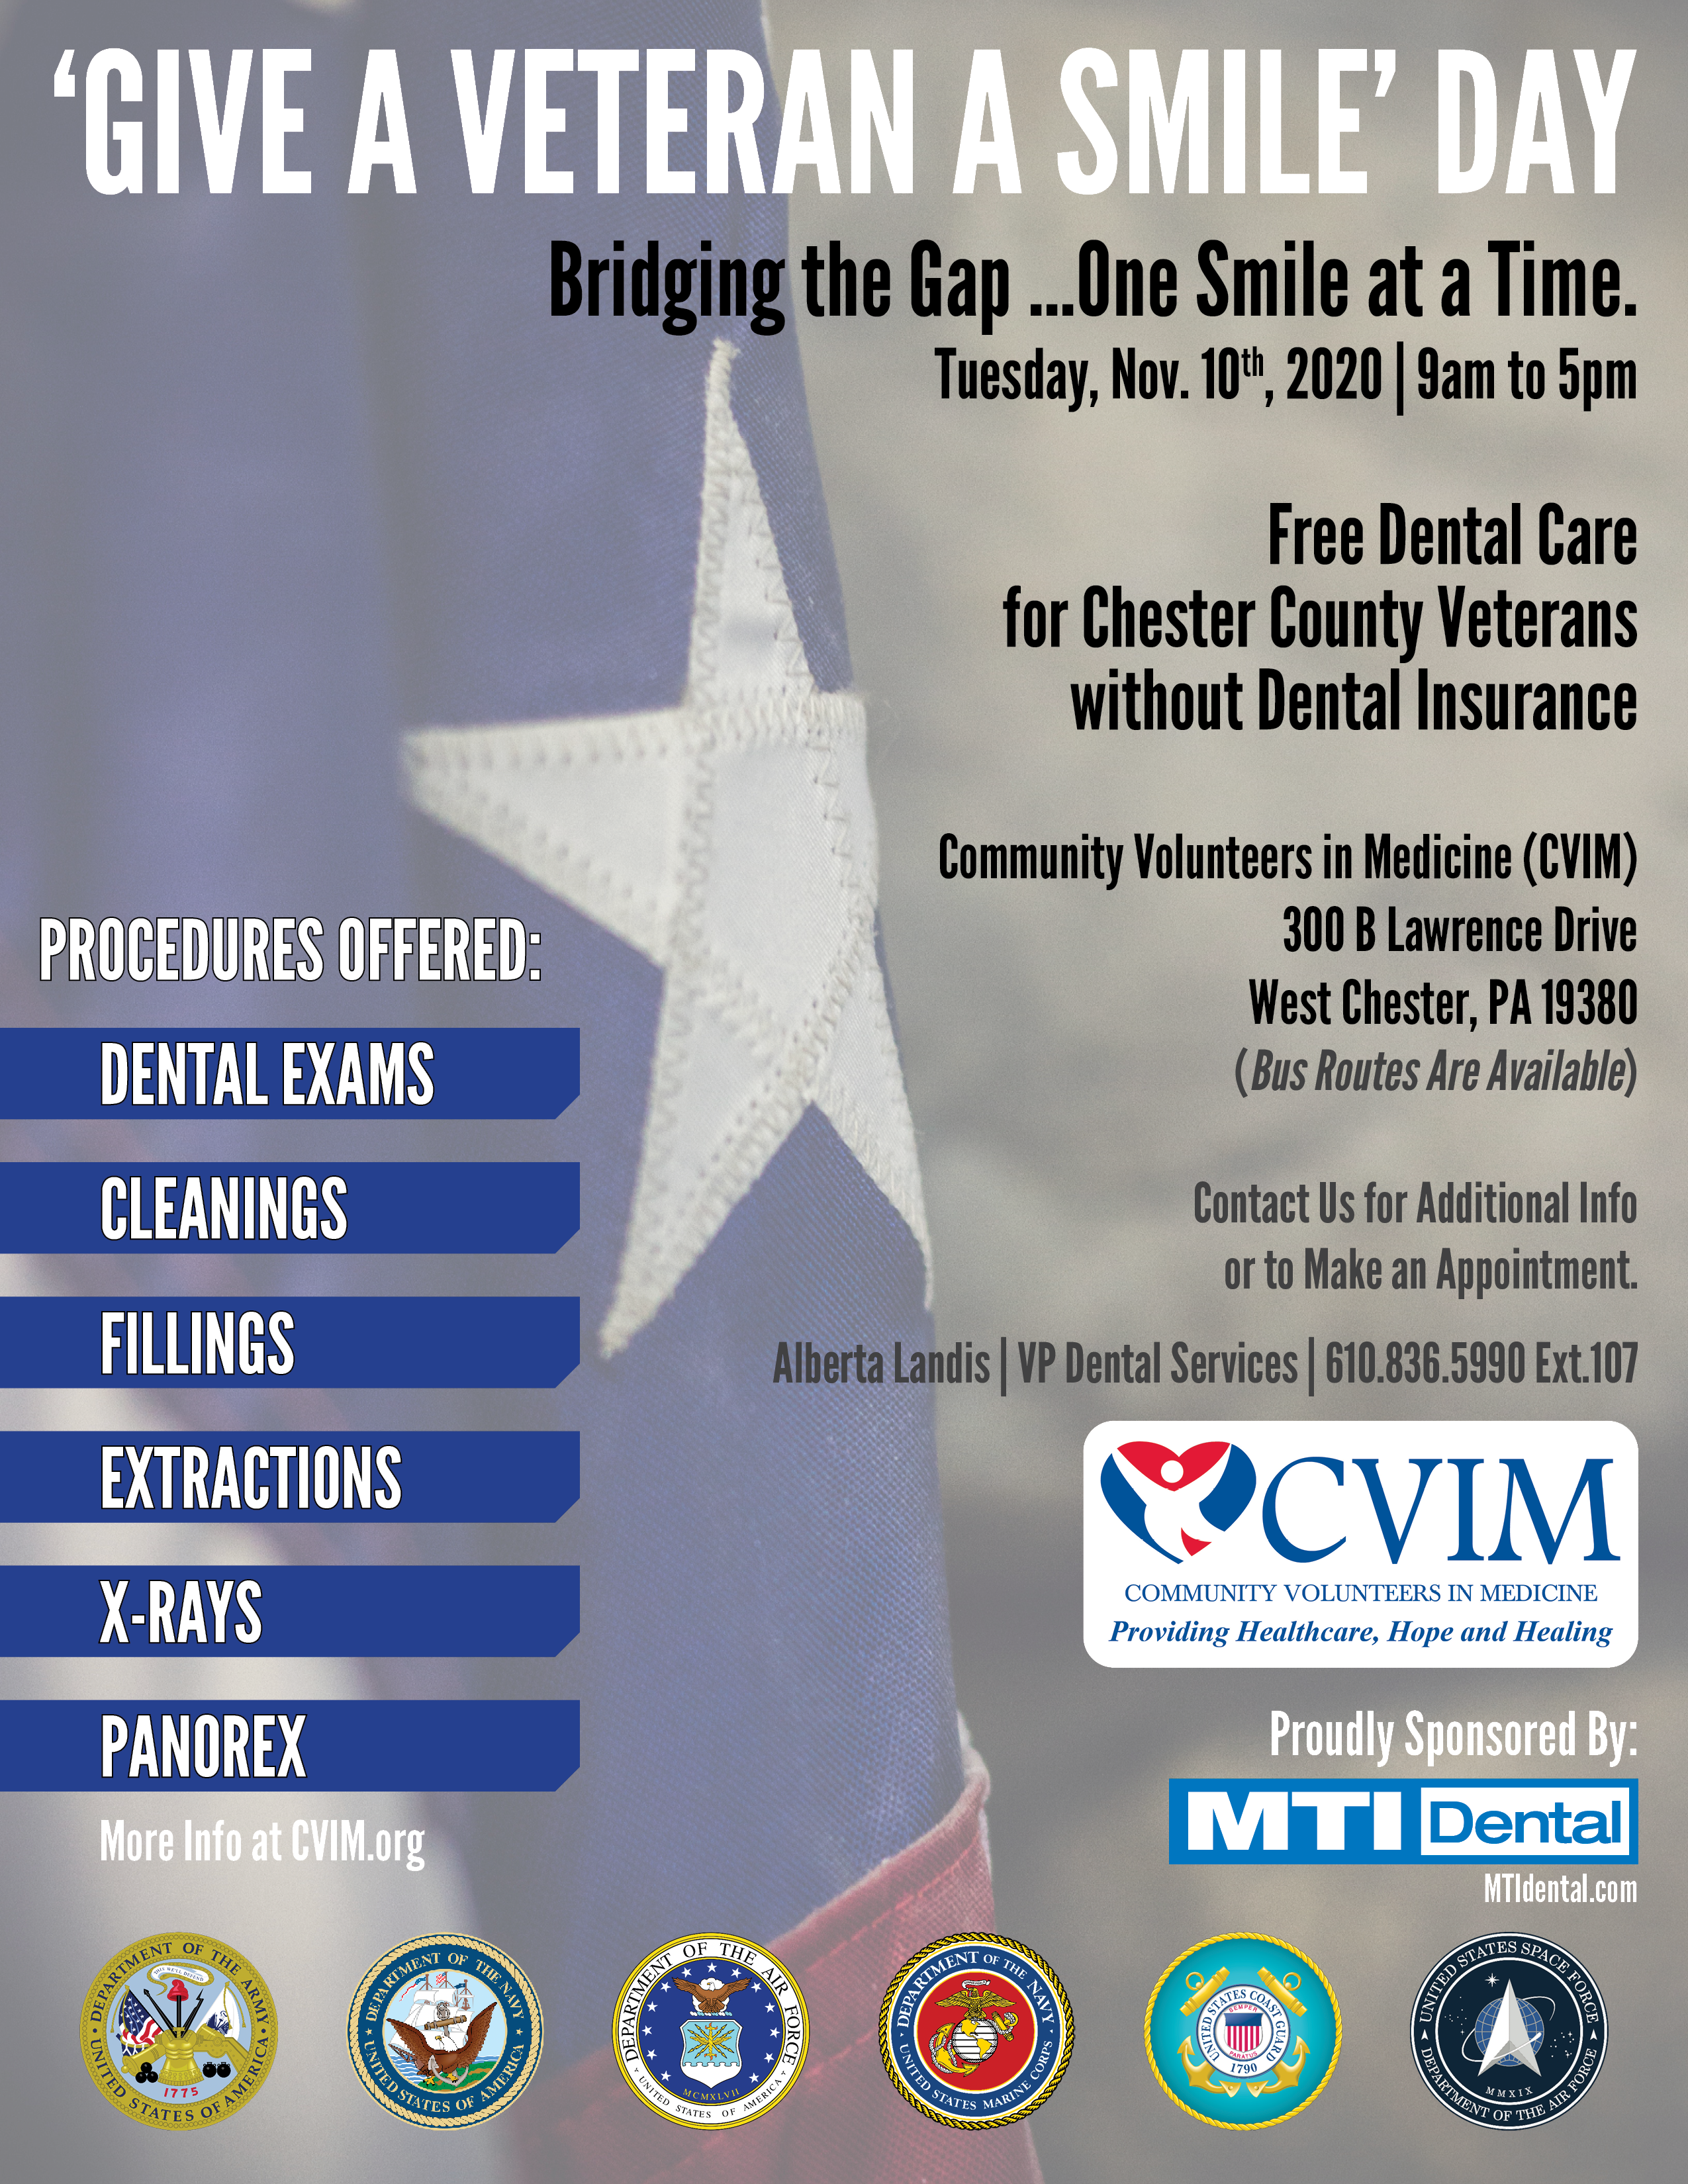 Give a Veteran A Smile Day, by CVIM and MTI Dental.